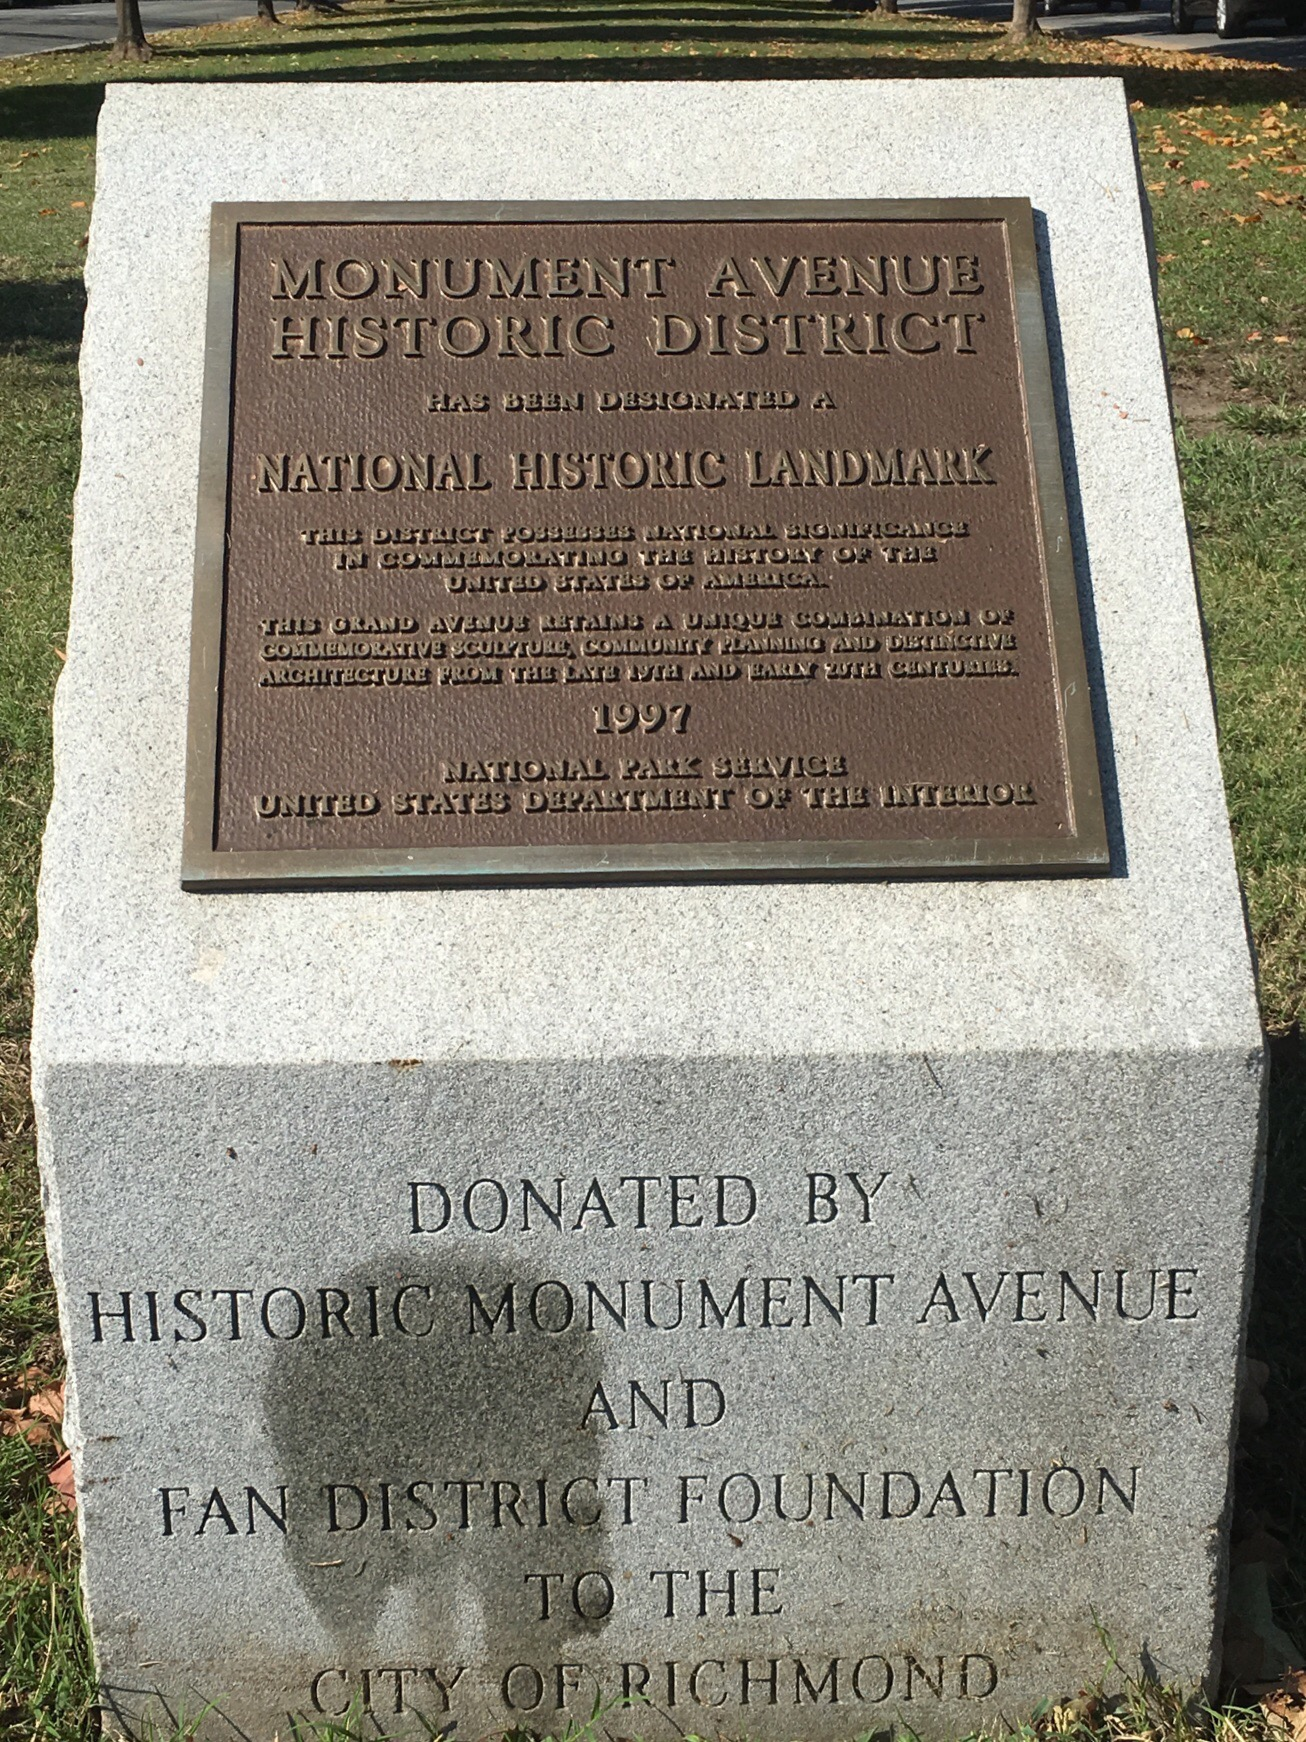 Monument Avenue Historic District Plaque